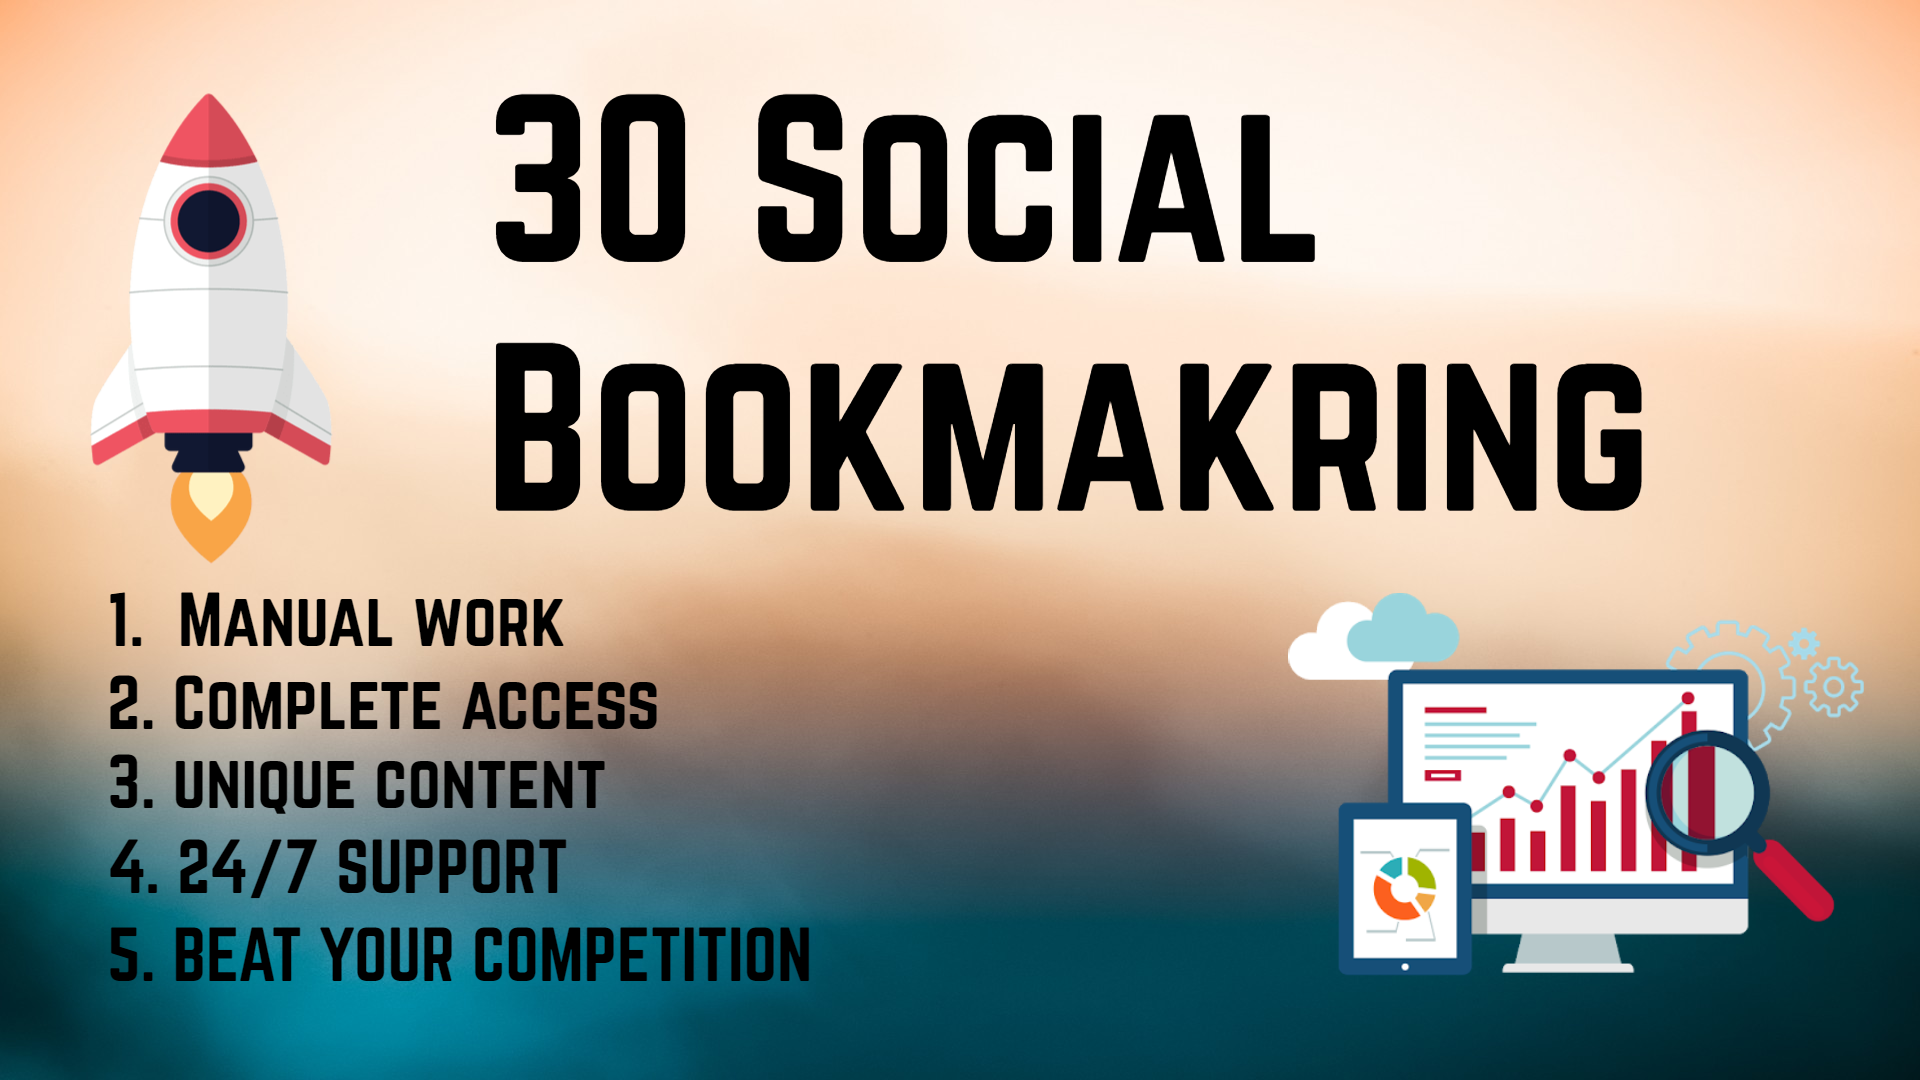 Create 30 Social Bookmarking For your website